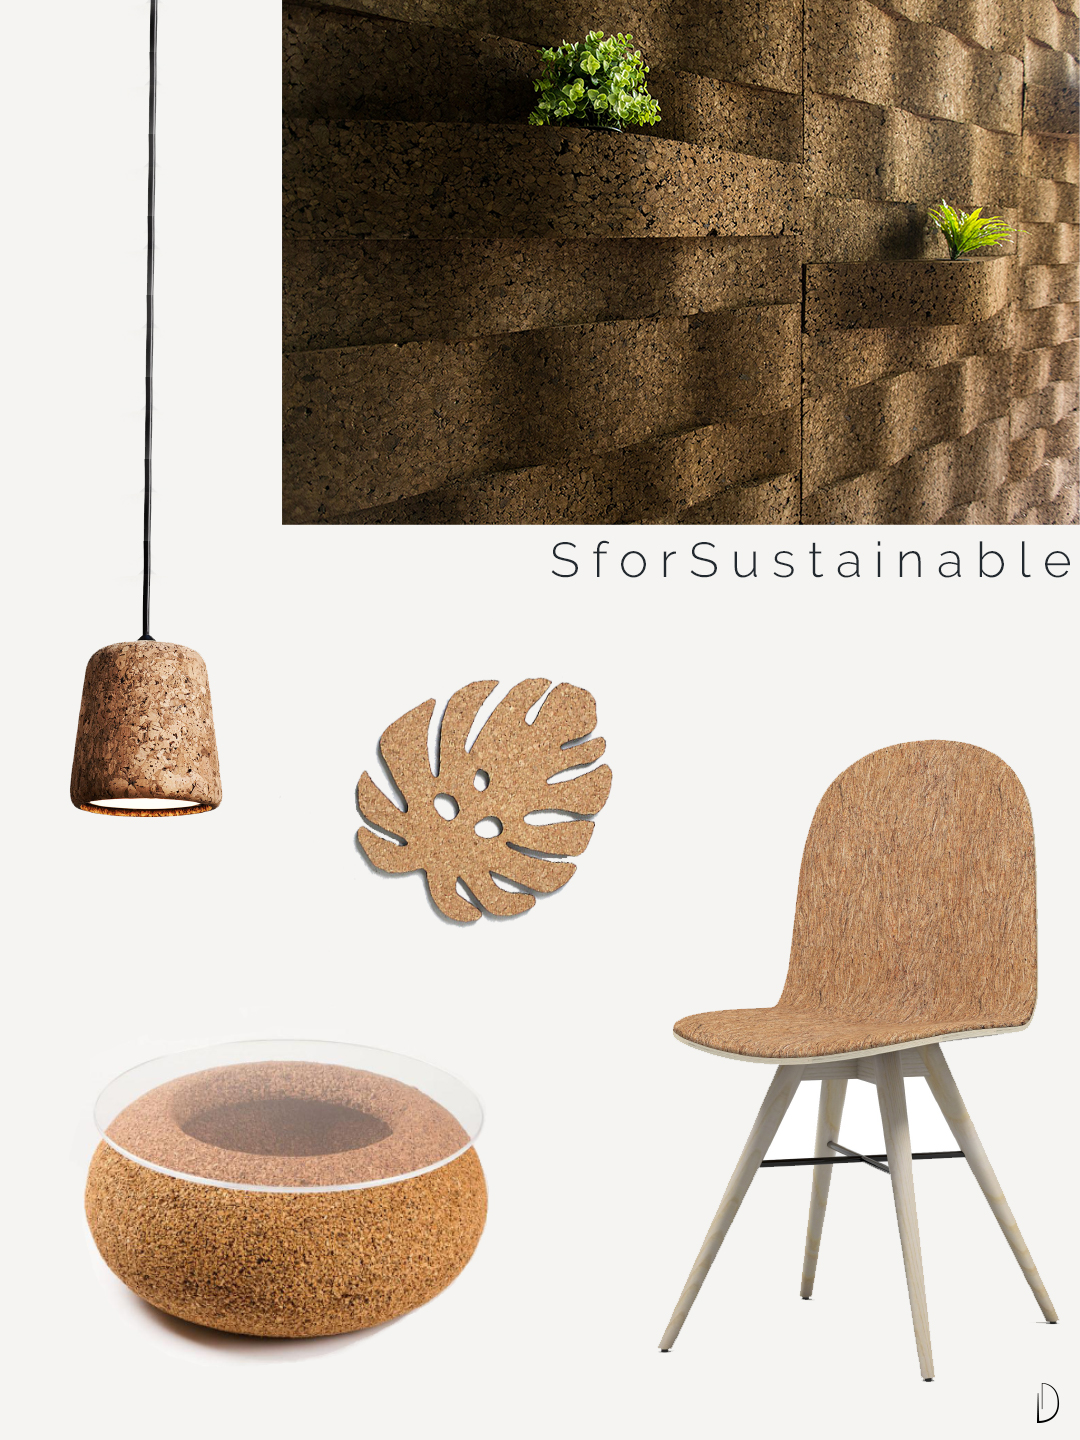 Cork furniture and accessories.